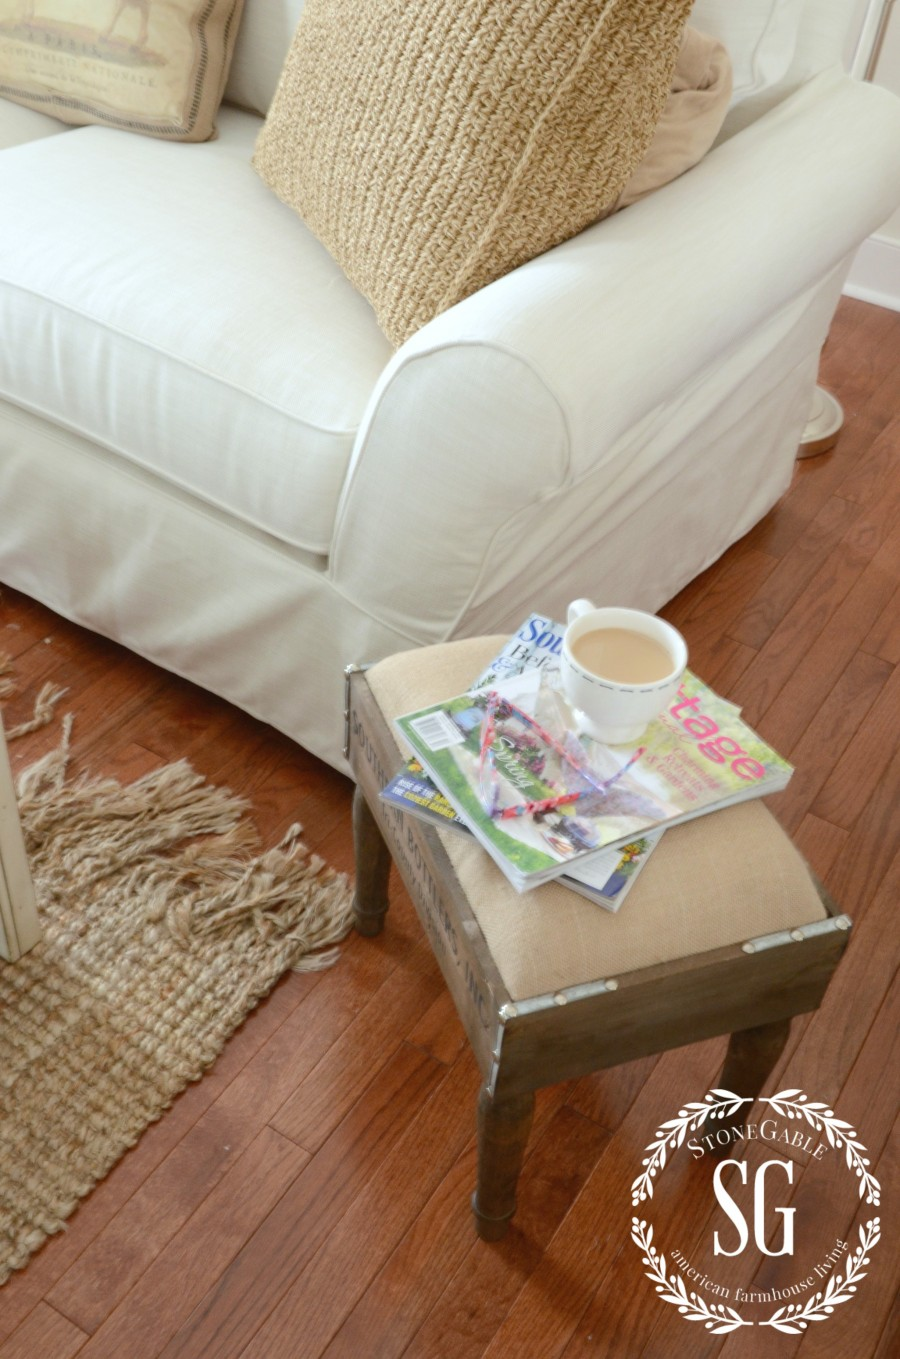 Pottery Barn Sofa And Burlap Stool Stonegableblog